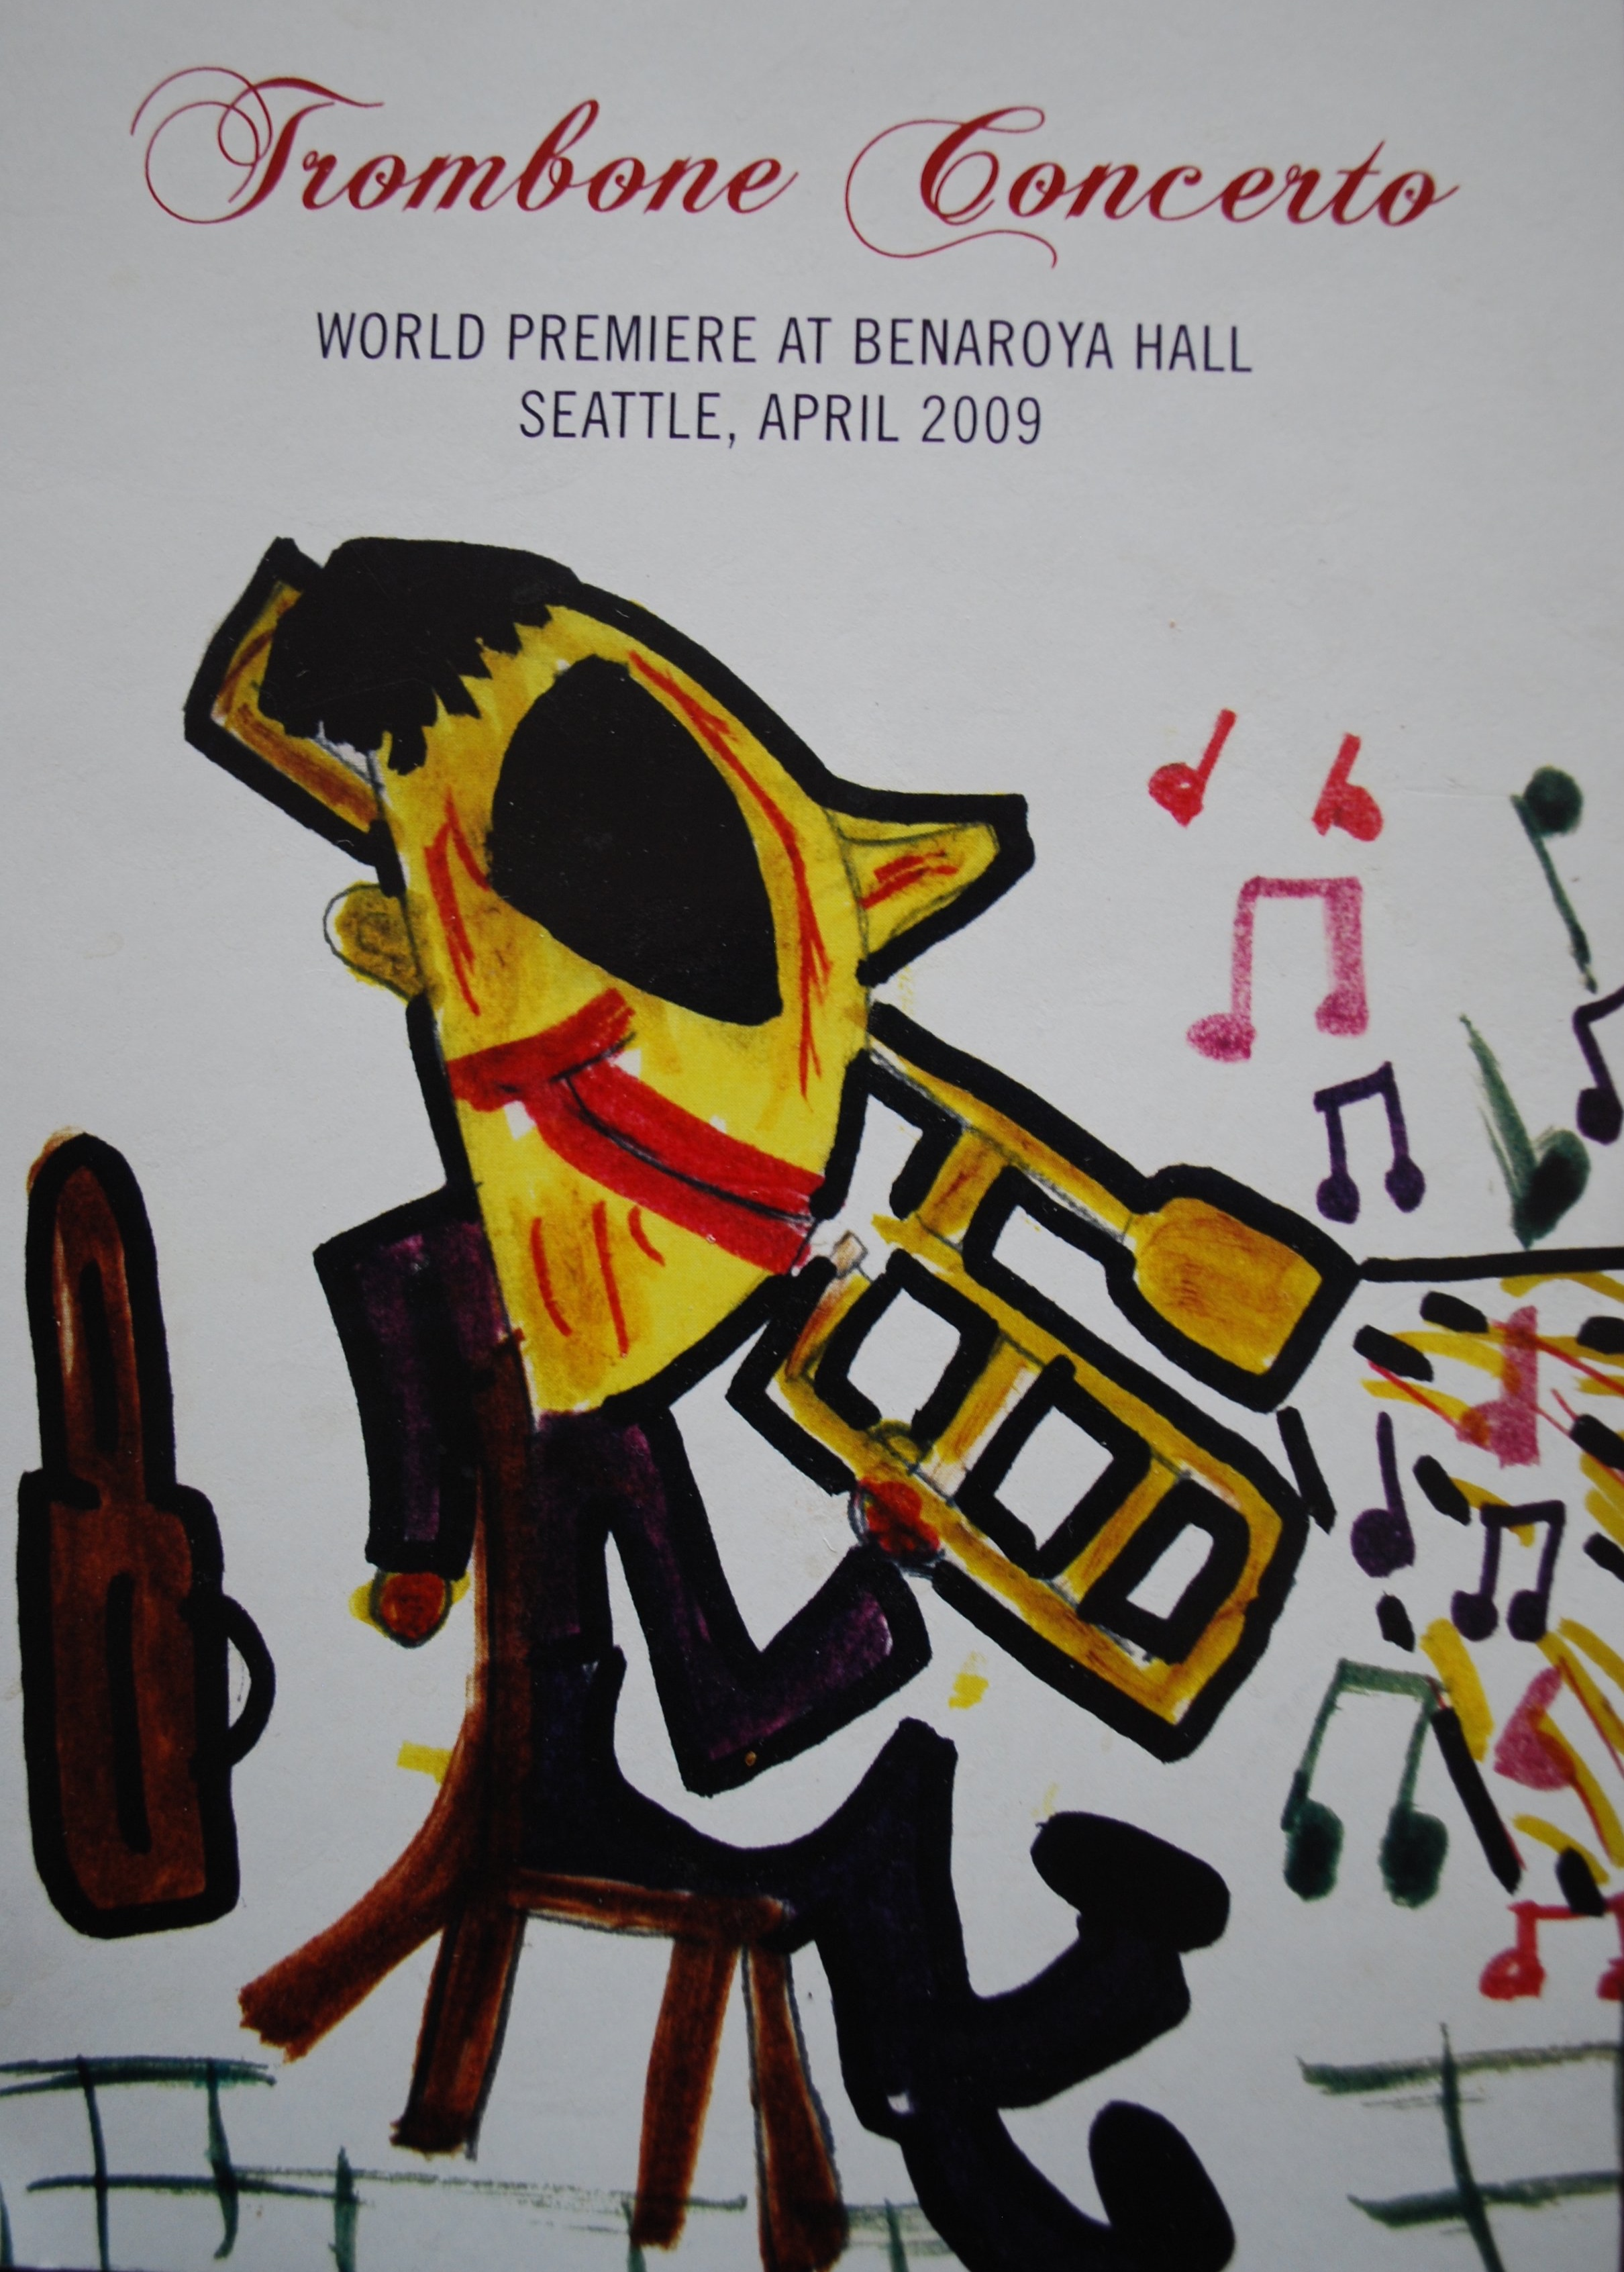 Trombone Concerto , World Premiere at Benaroya Hall, Seattle, April 2009: Gene Allcott was an artist of national renown specializing in posters for the Olympic Games. This sketch, showing his older brother John, was drawn when Gene was in the fifth grade.